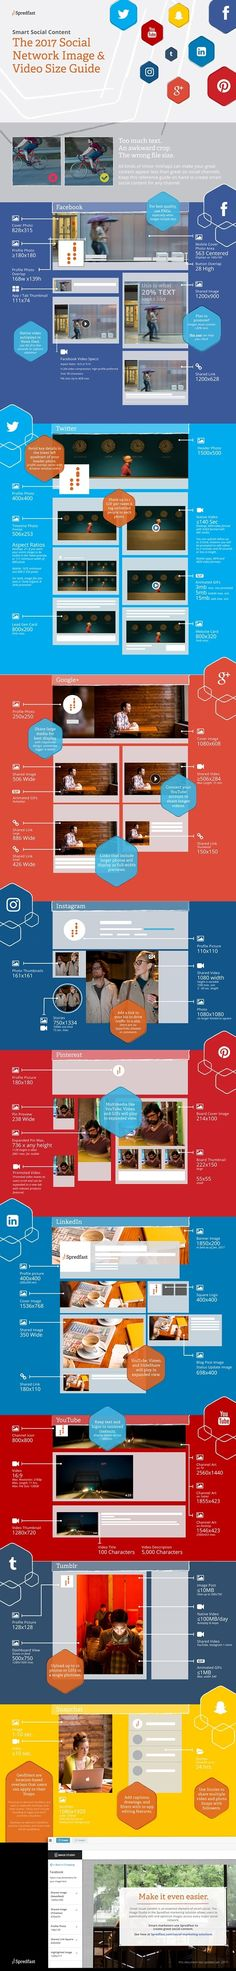 Social media infographic and charts The 2017 social network image and video size guide Infographic Description The 2017 social network image and video Le Social, Social Media Plattformen, Social Media Images, Social Media Marketing, Social Networks, Content Marketing, Marketing Technology, Marketing Tools, Inbound Marketing